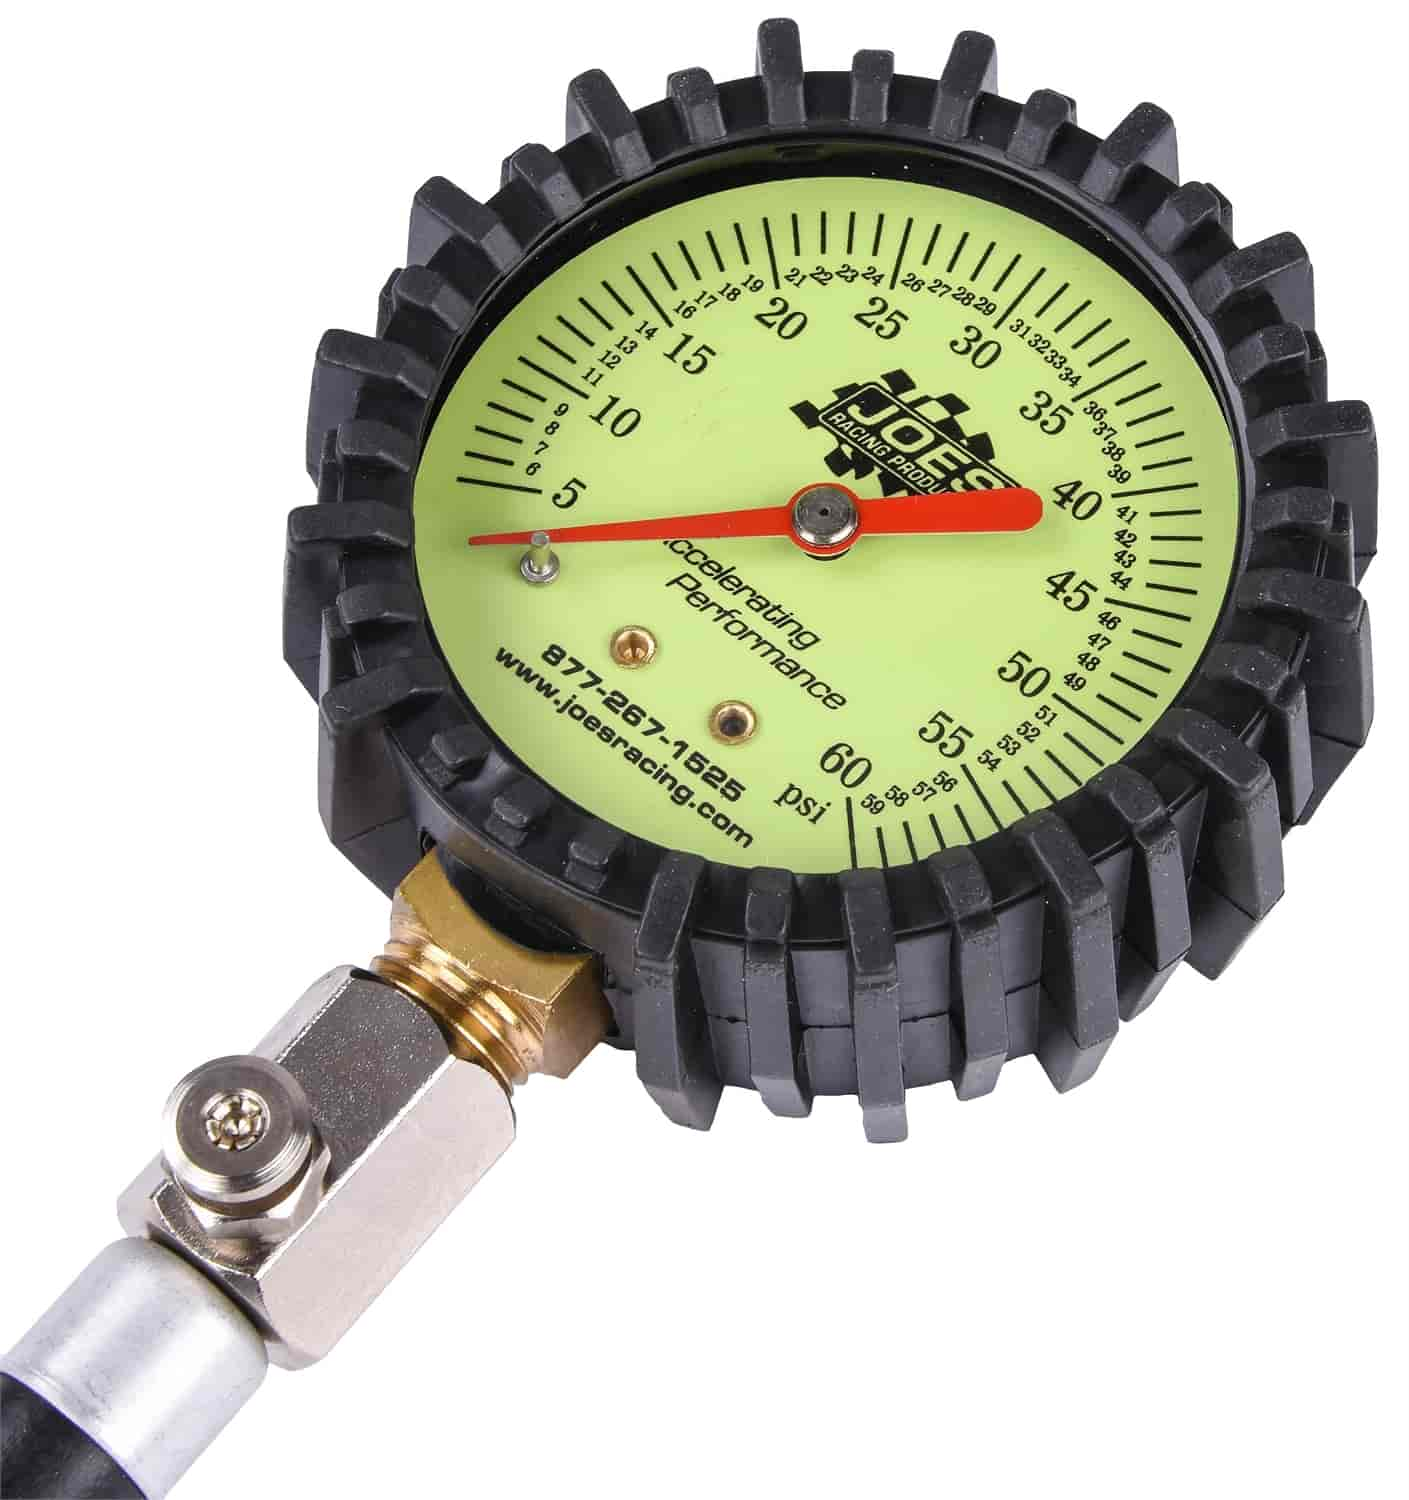 JOES Racing Products 32307 - JOES Racing Products Tire Gauges